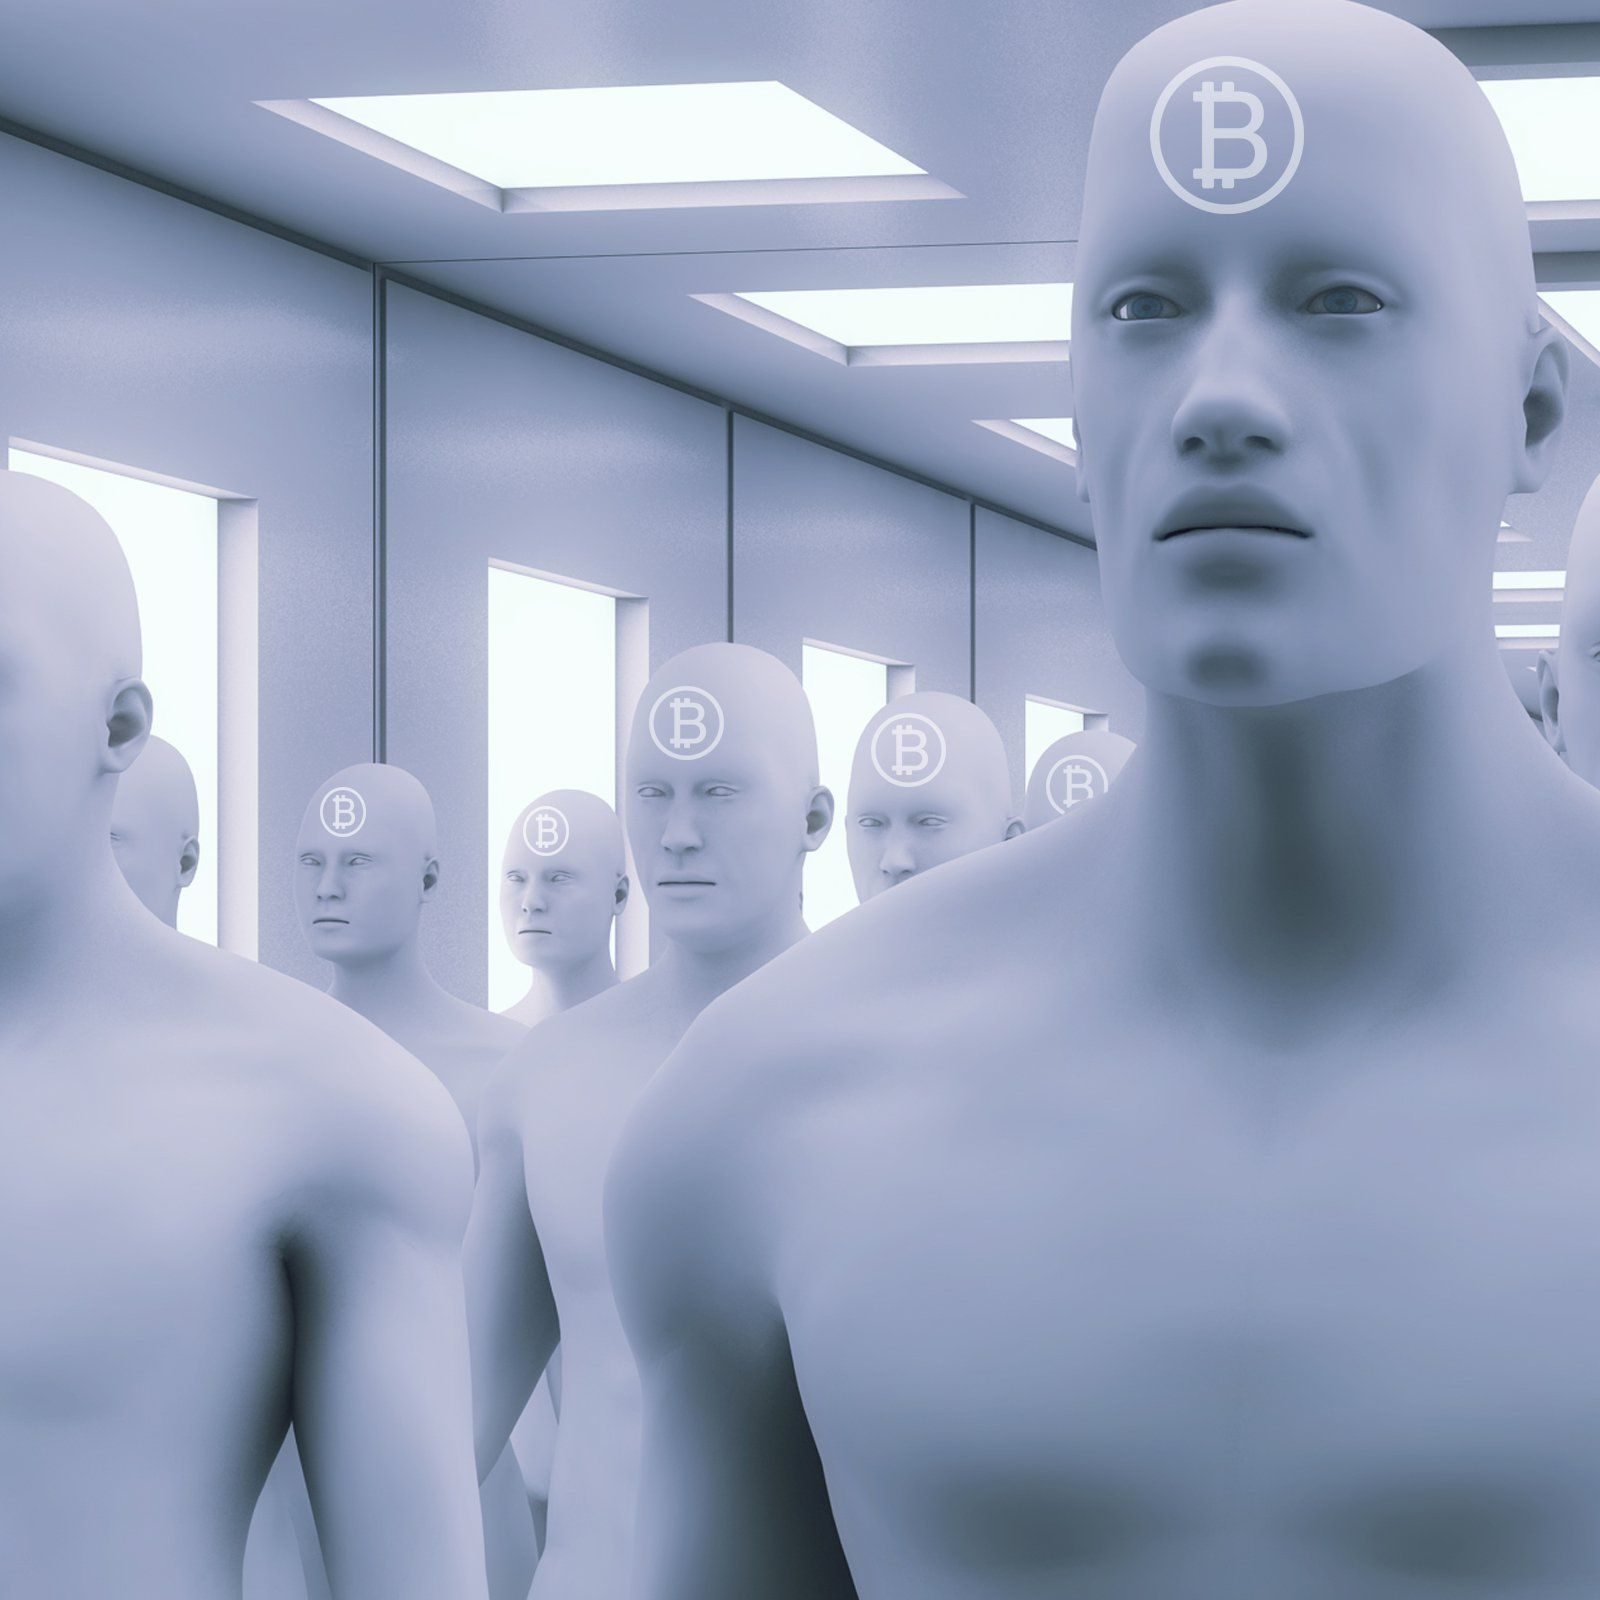 The Marketing Ploys of Clones Another Project Aims to